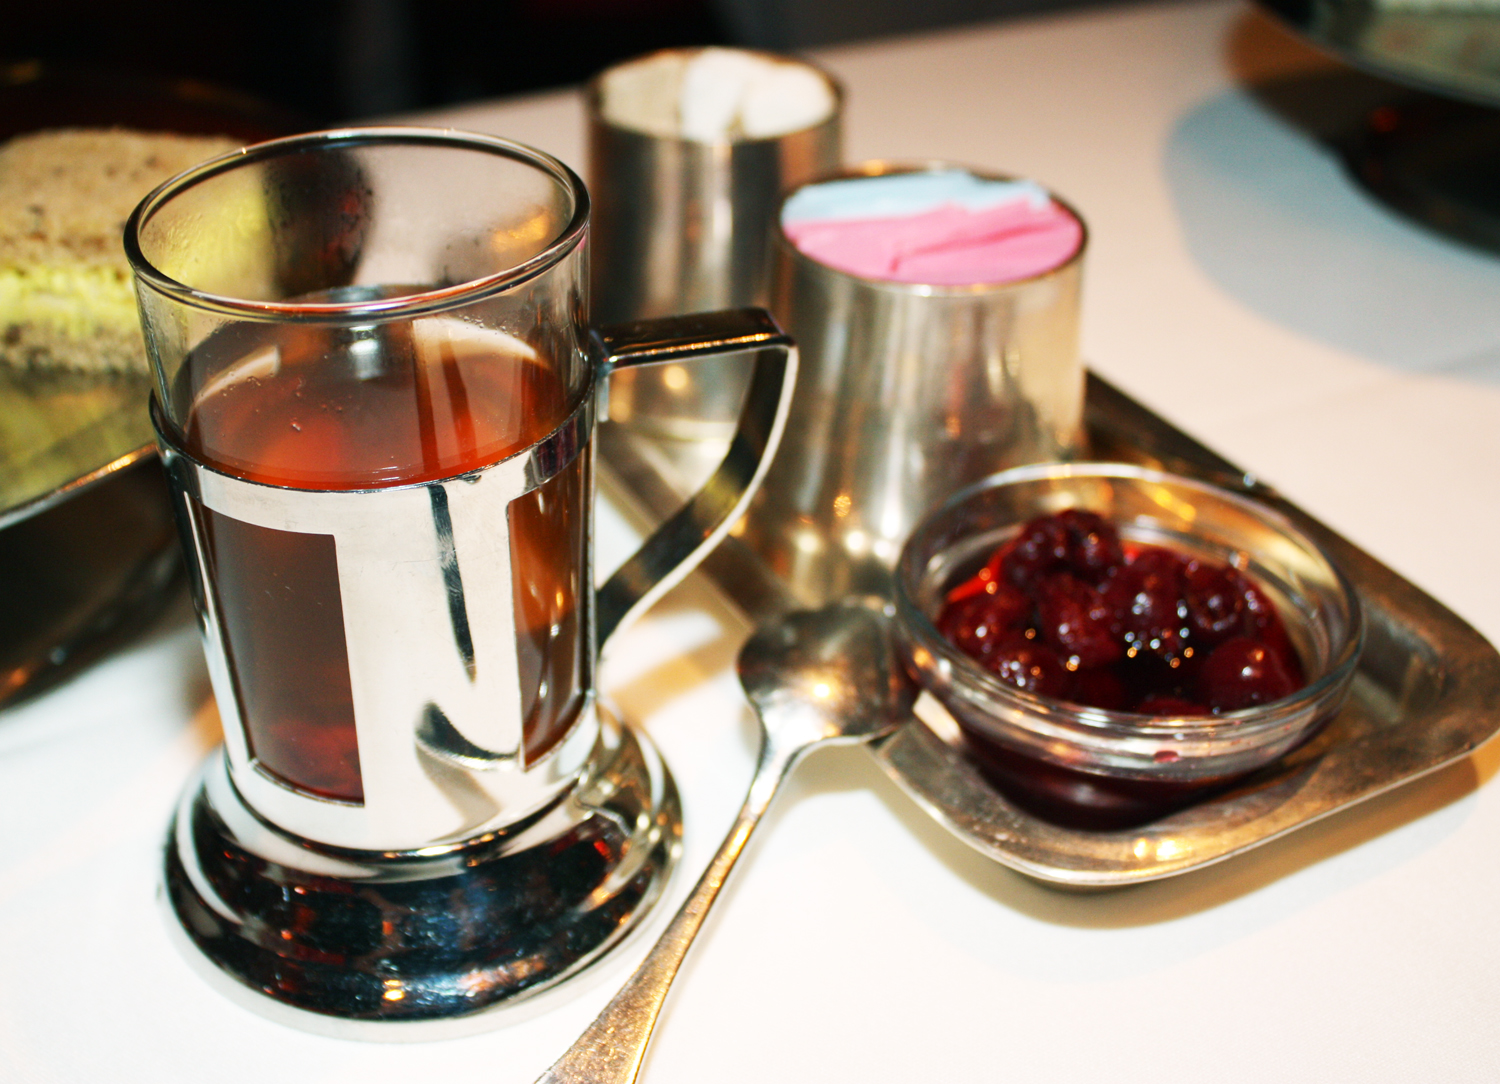 Russian-Tea-Room-tea-and-jam-by-Linnea-C